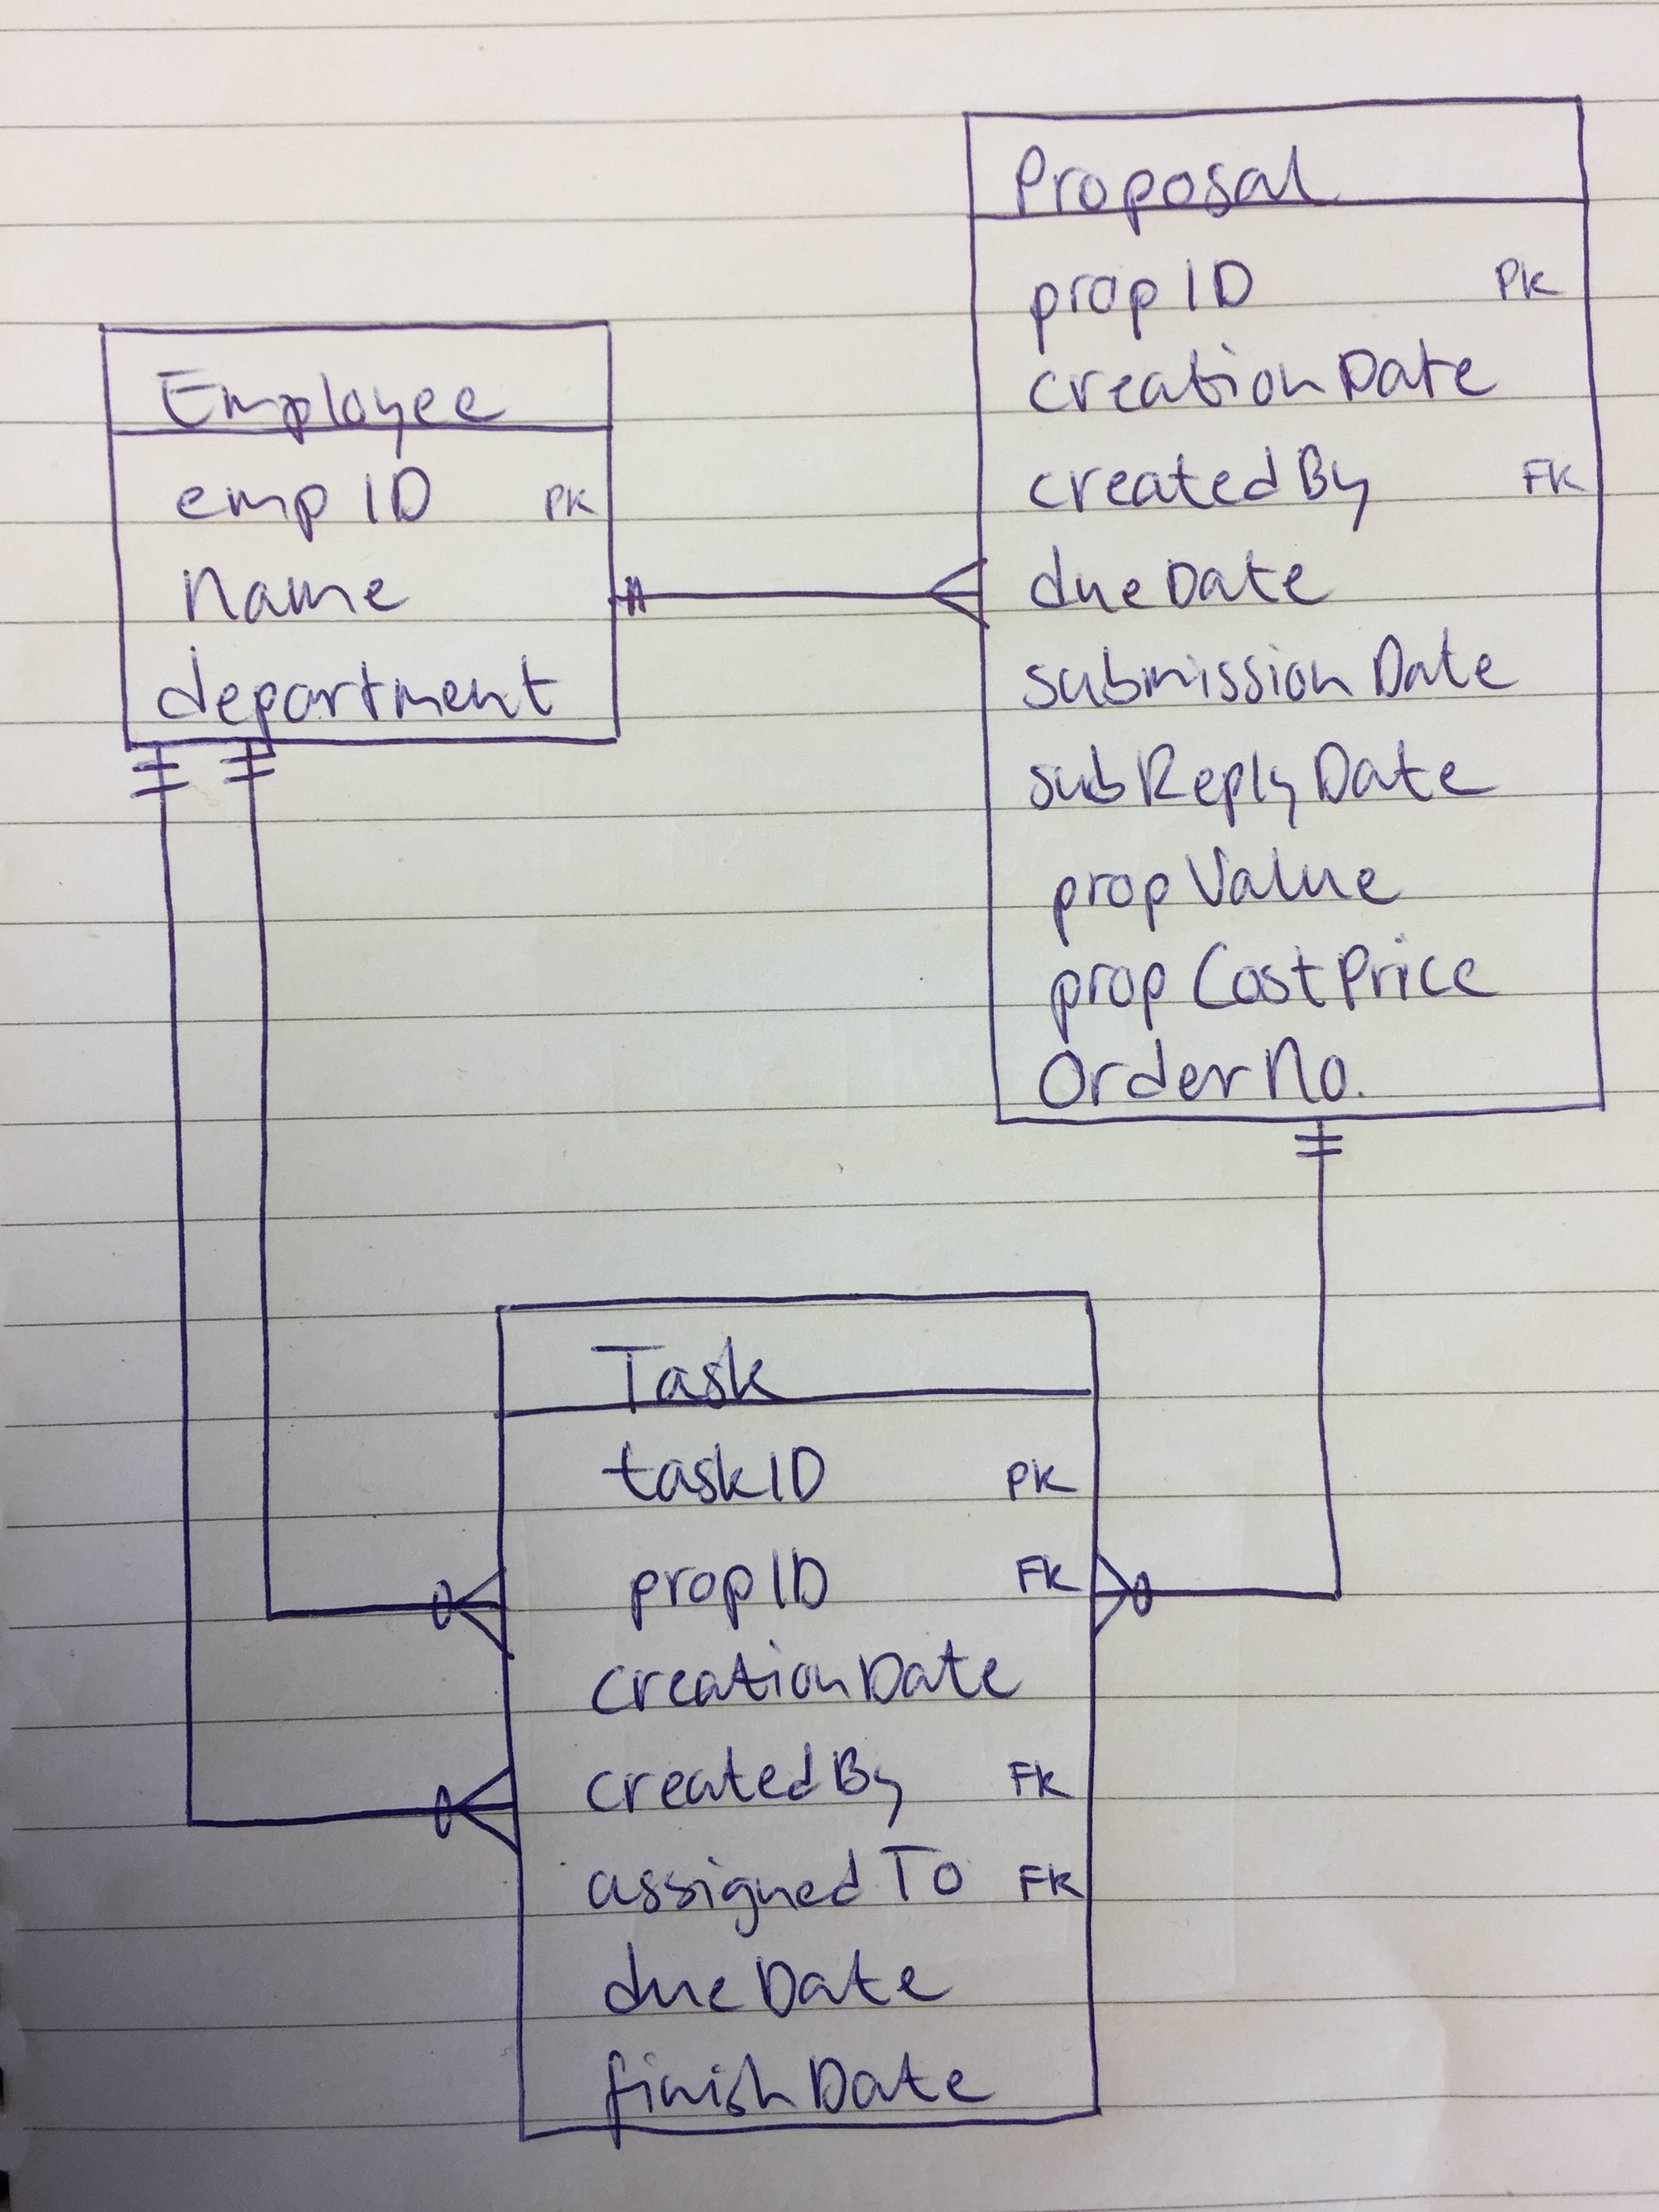 Multiple One To Many Relationships Between Tables - Database pertaining to Er Diagram N-M Relationship